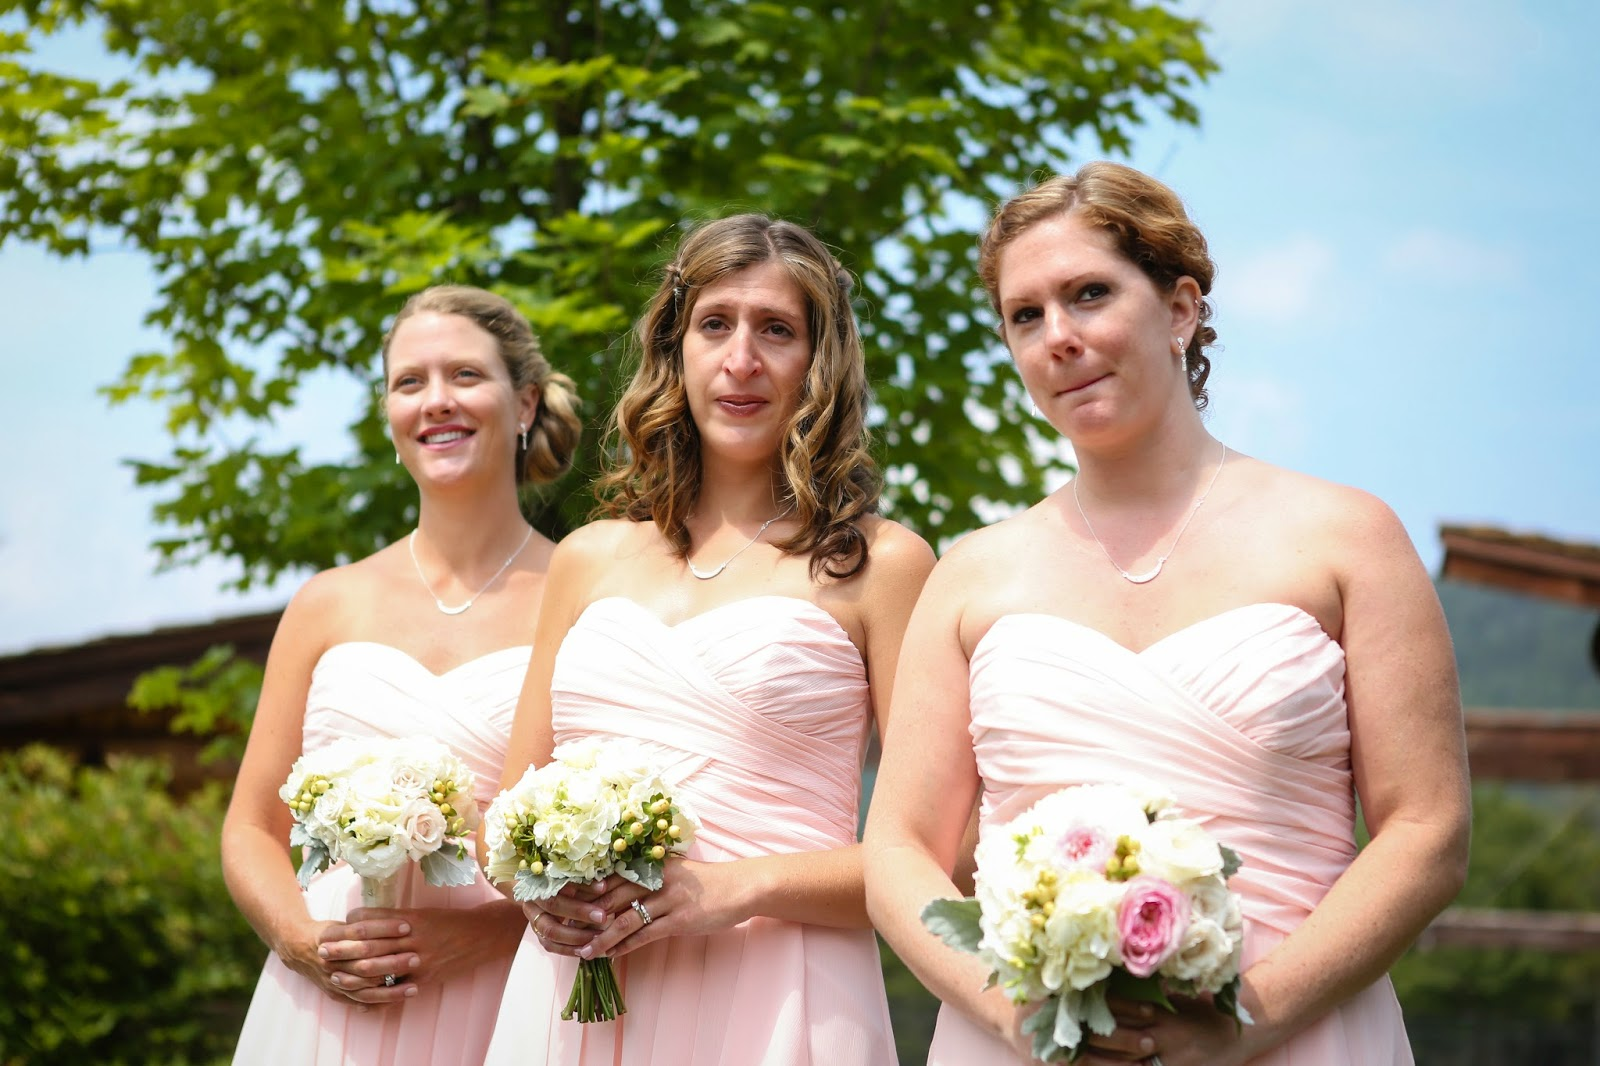 Lake Placid Wedding - The Whiteface Lodge Wedding - Bridesmaid & Maid of Honor Bouquets - Upstate NY Wedding - Splendid Stems Floral Designs